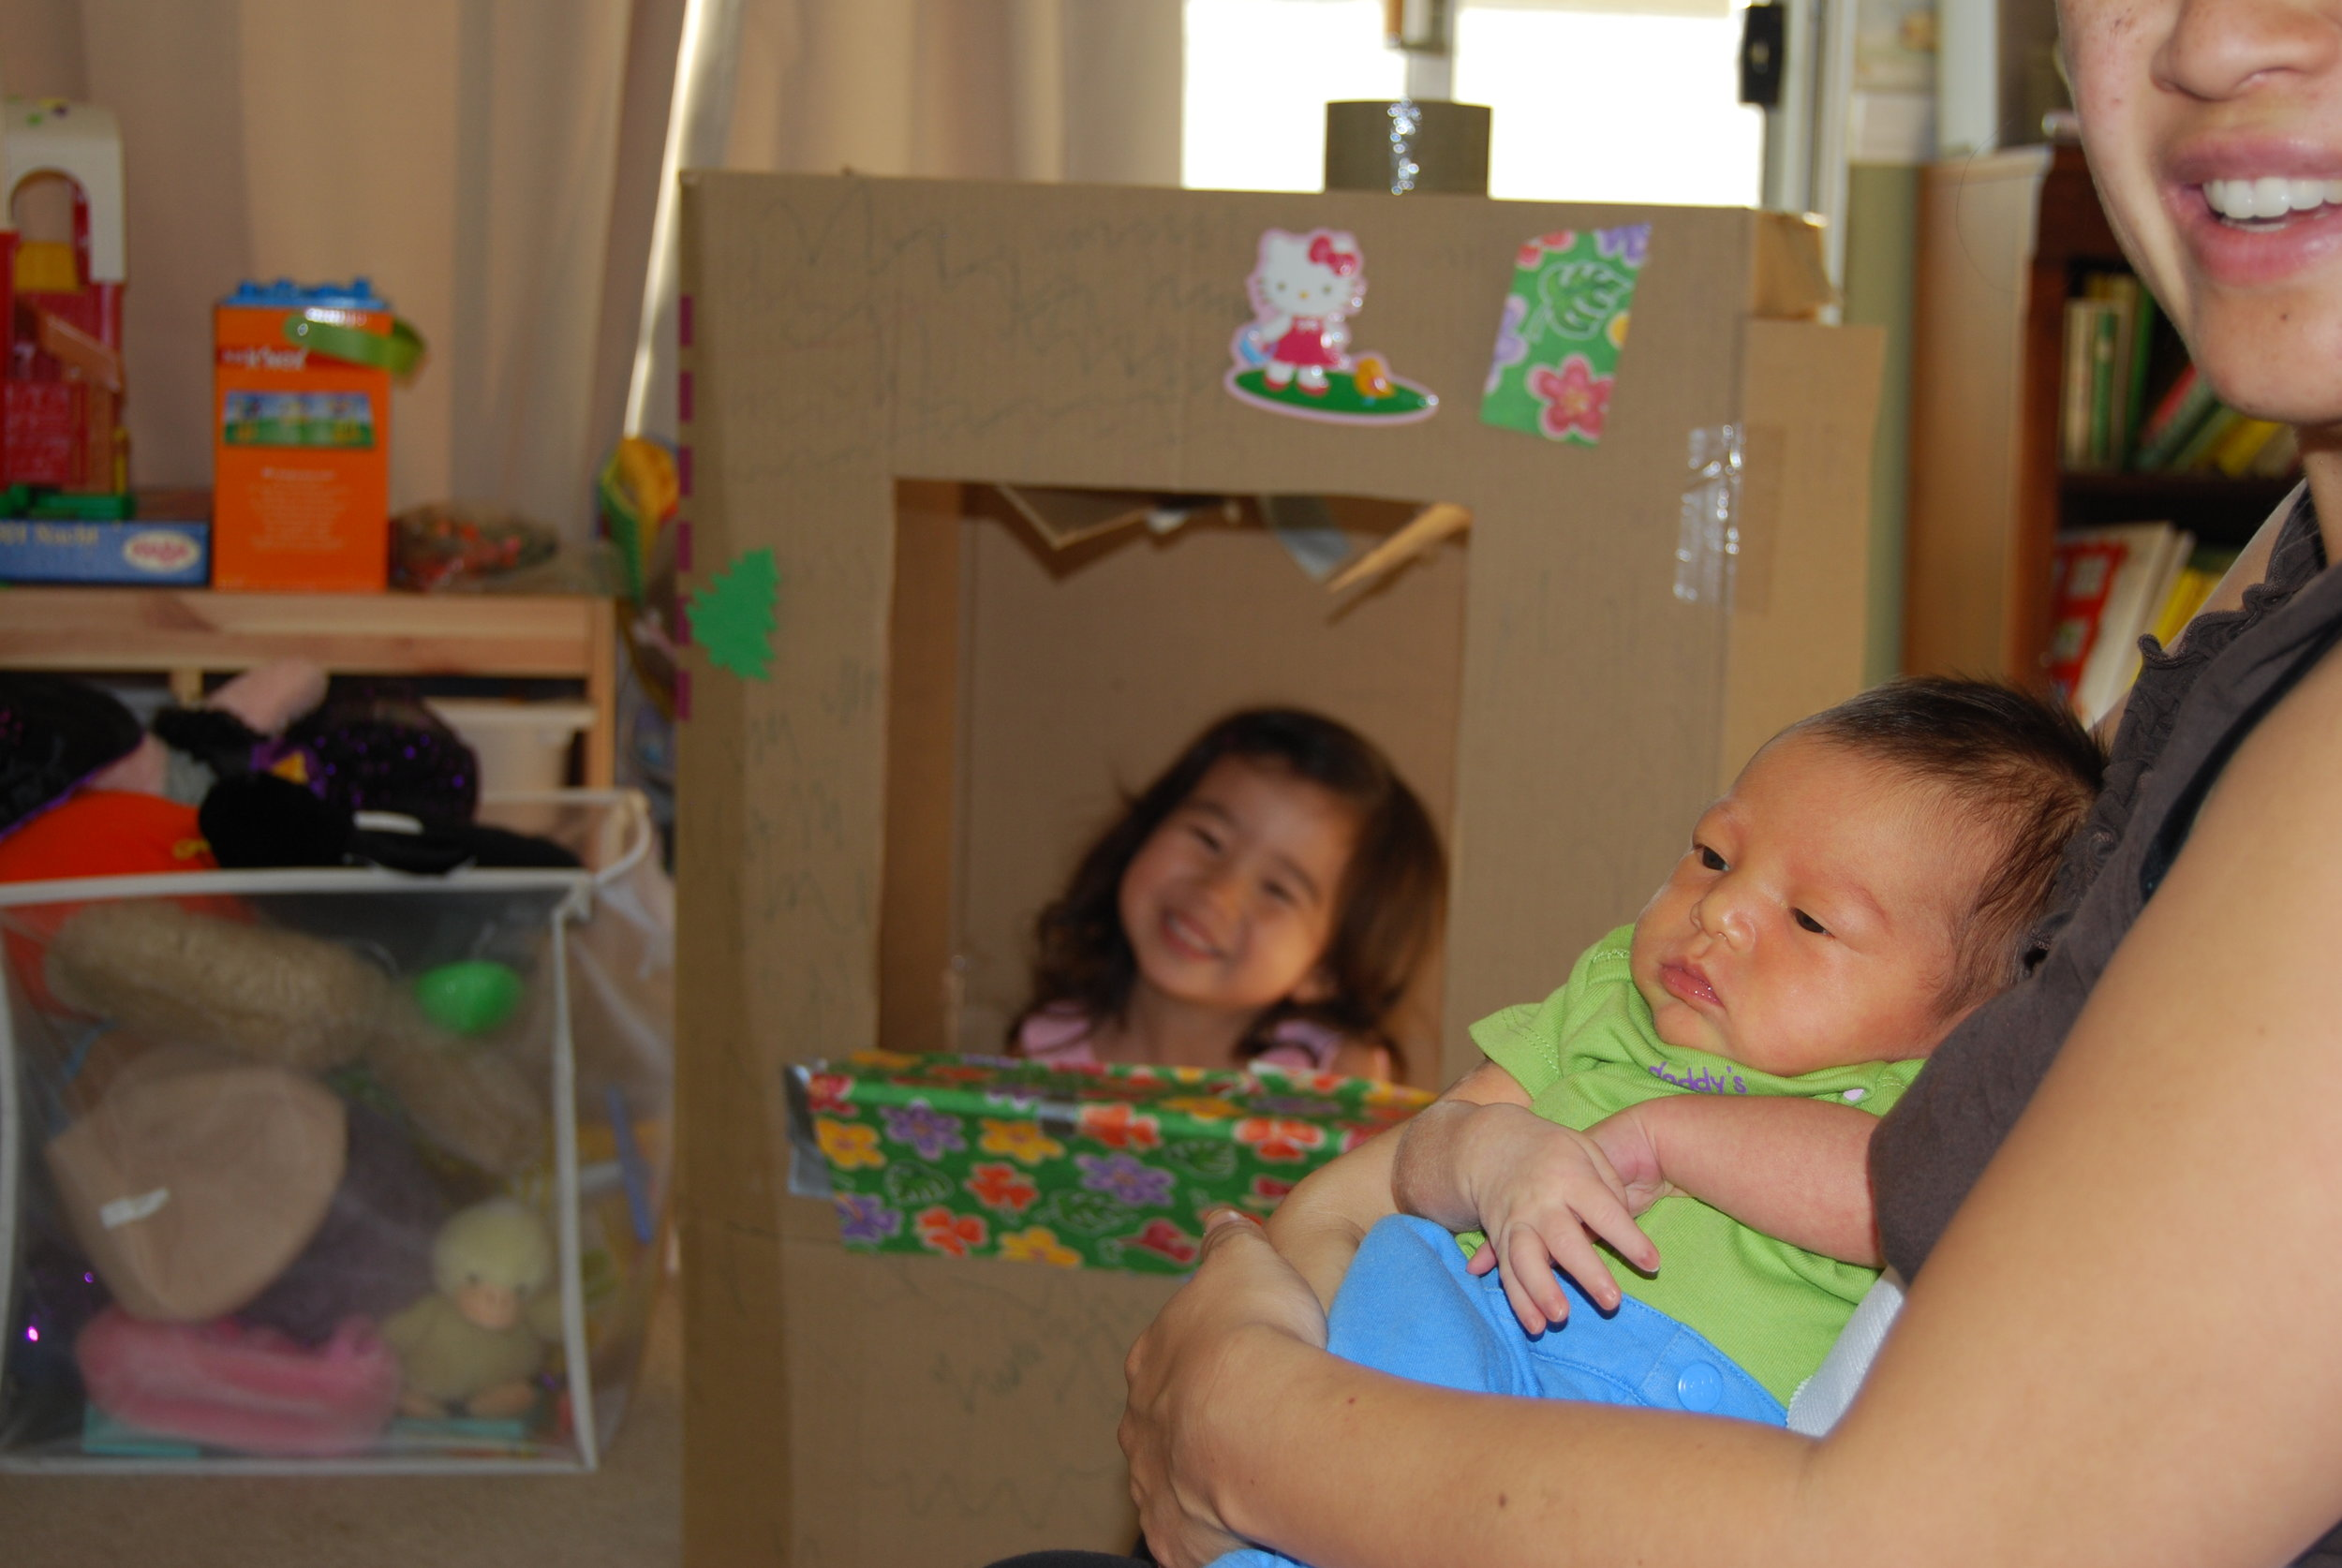 Mini Me playing in her bakery box while I snuggle up with a newborn Little Lion.  See, she's even yellow! (with jaundice) Posted with permission.